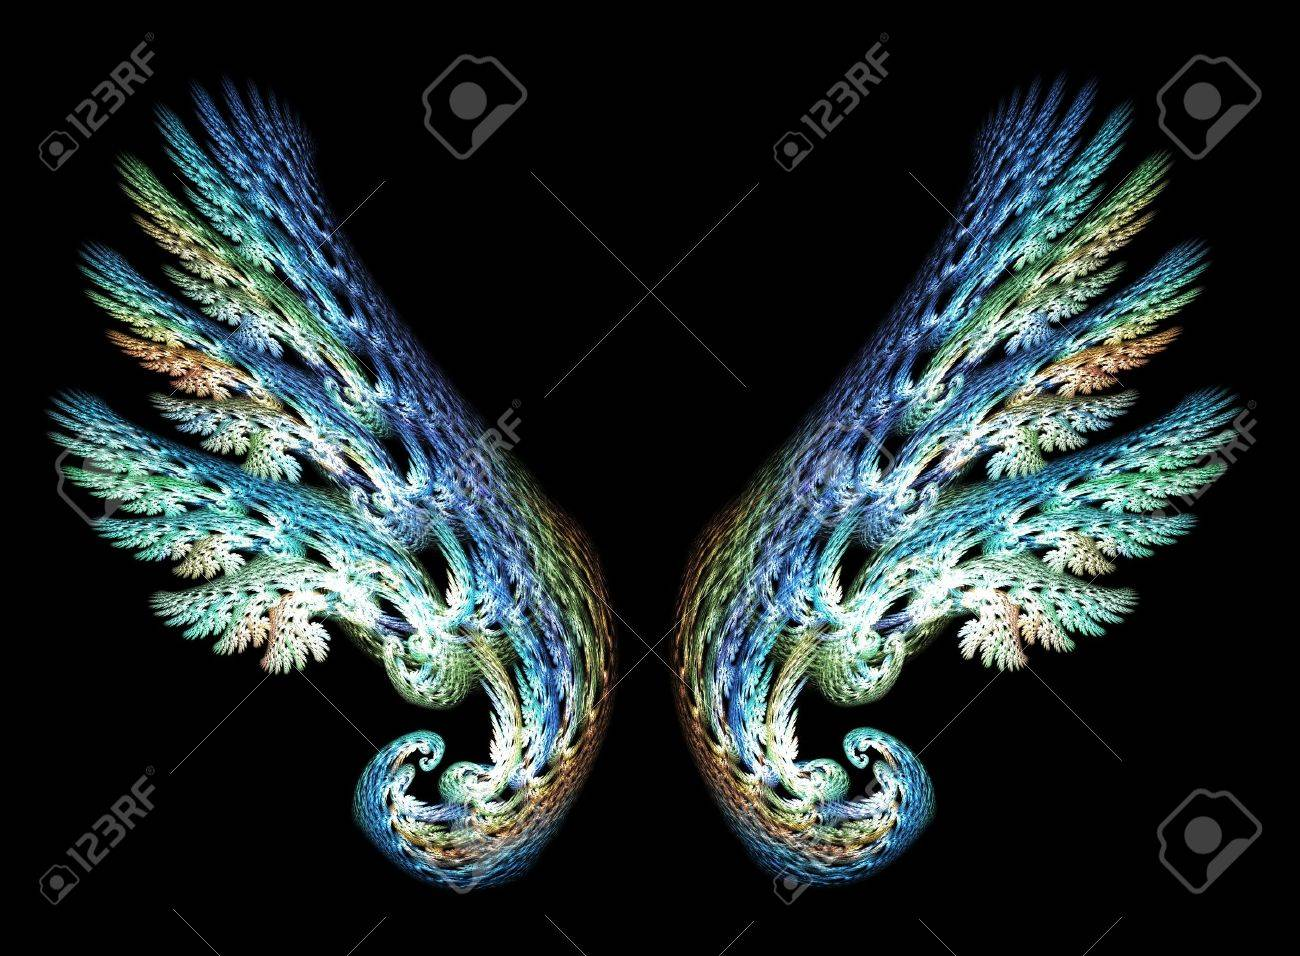 Two Angel Wings in blue and green tones over black background Stock Photo - 5192436